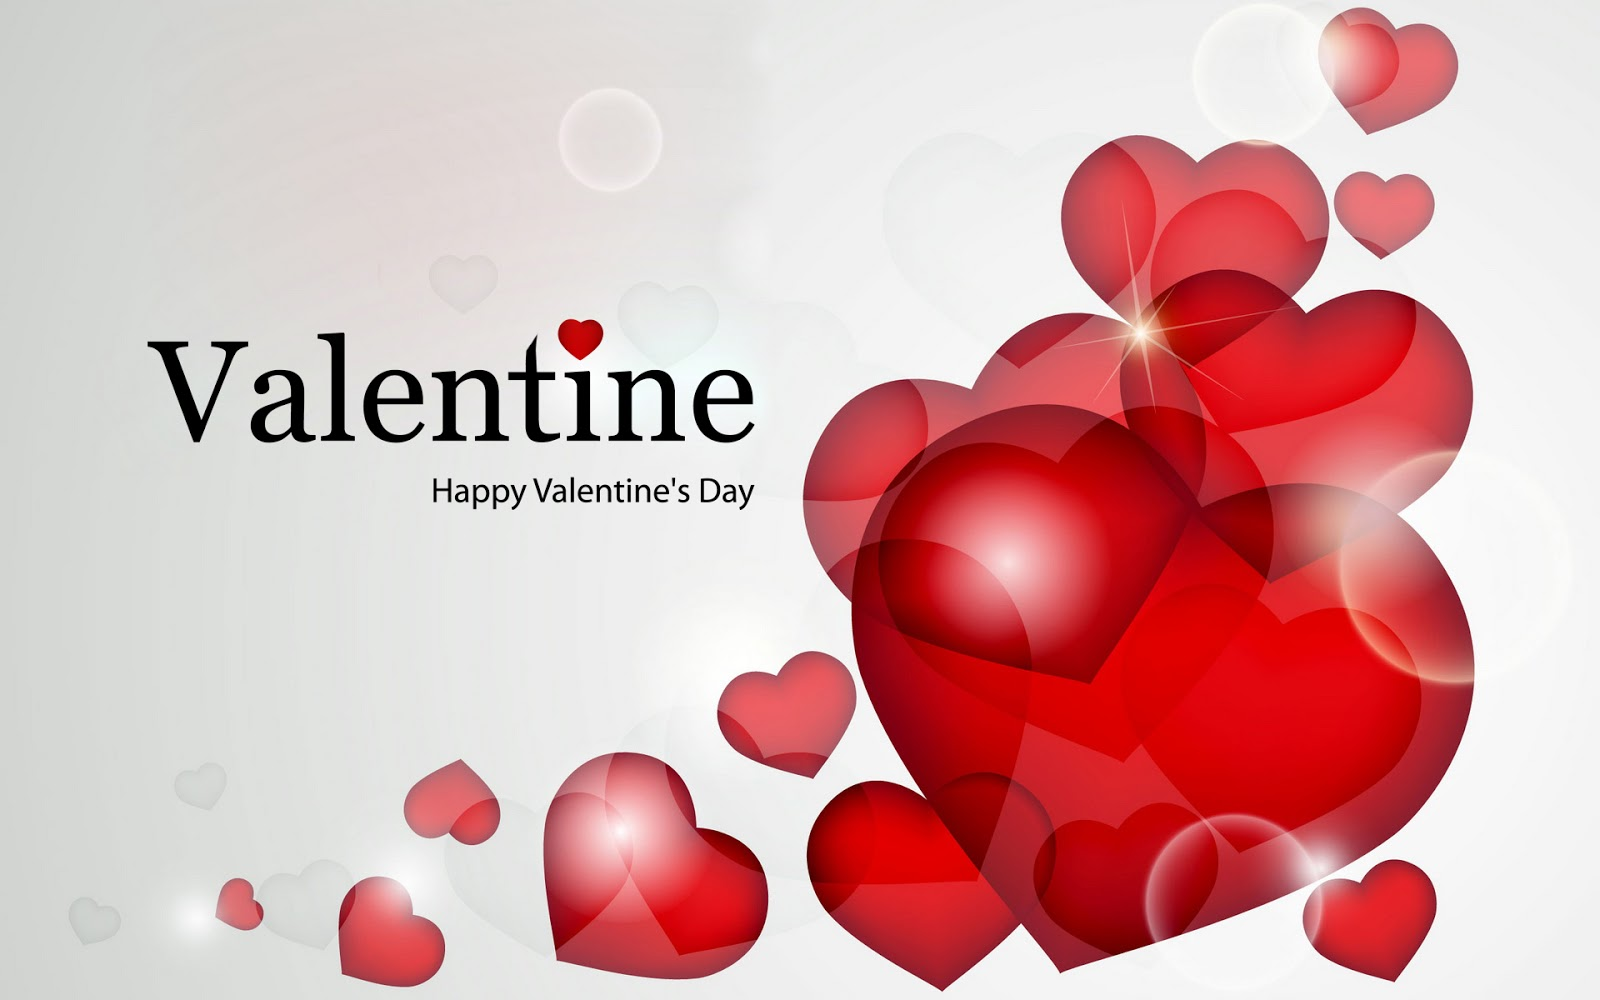 Happy valentines day 2019 images song pictures video card gif happy valentines day 2019 images song pictures video card gif photos and more m4hsunfo Gallery